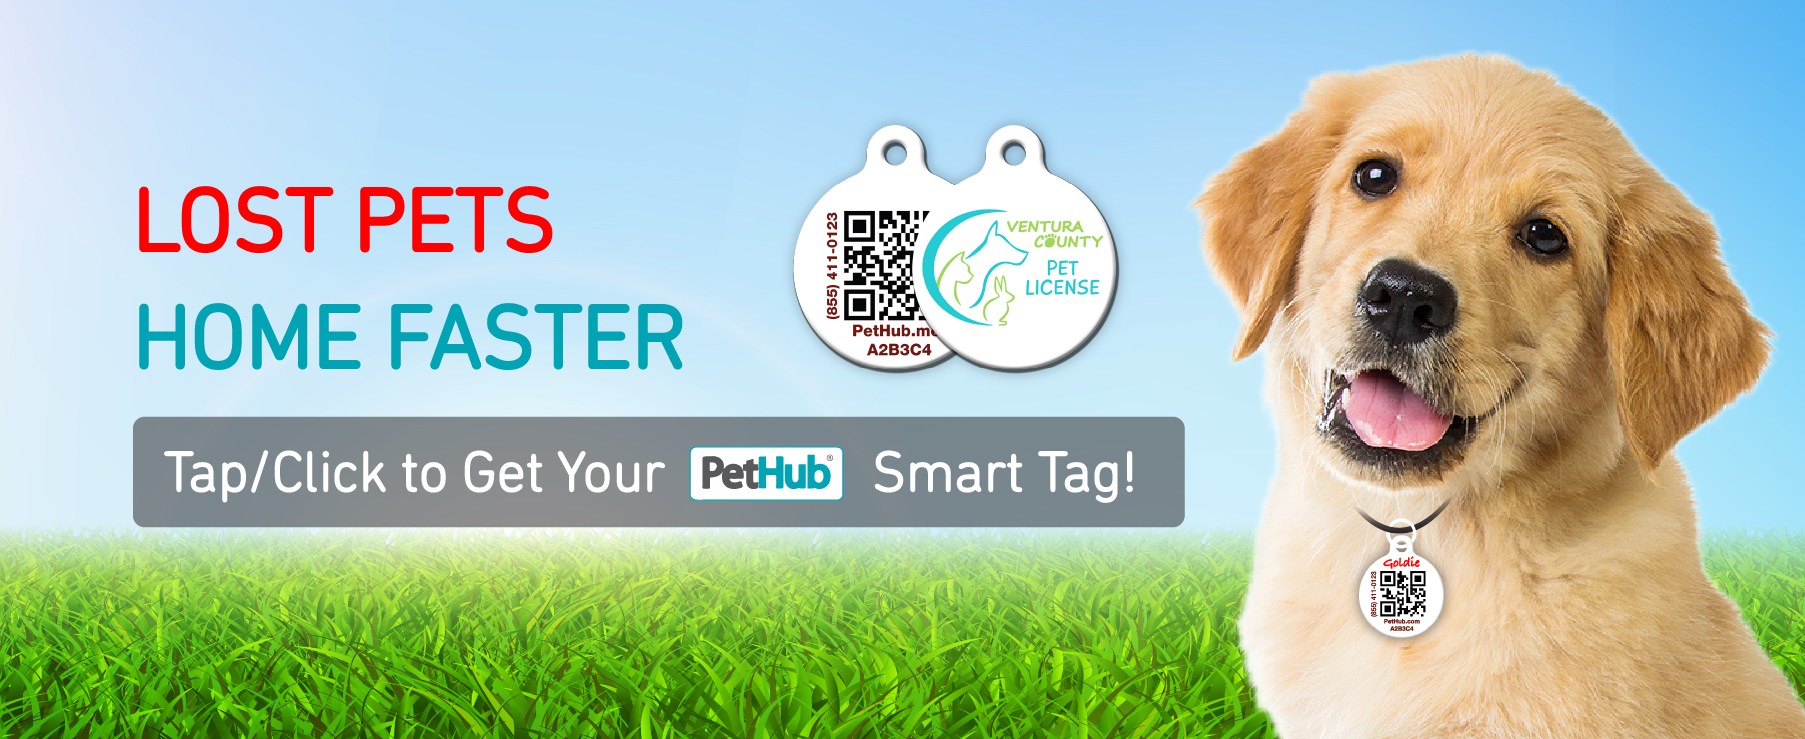 Lost Pets Home Faster With PetHub Tap or Click to Get Your PetHub Smart Tag